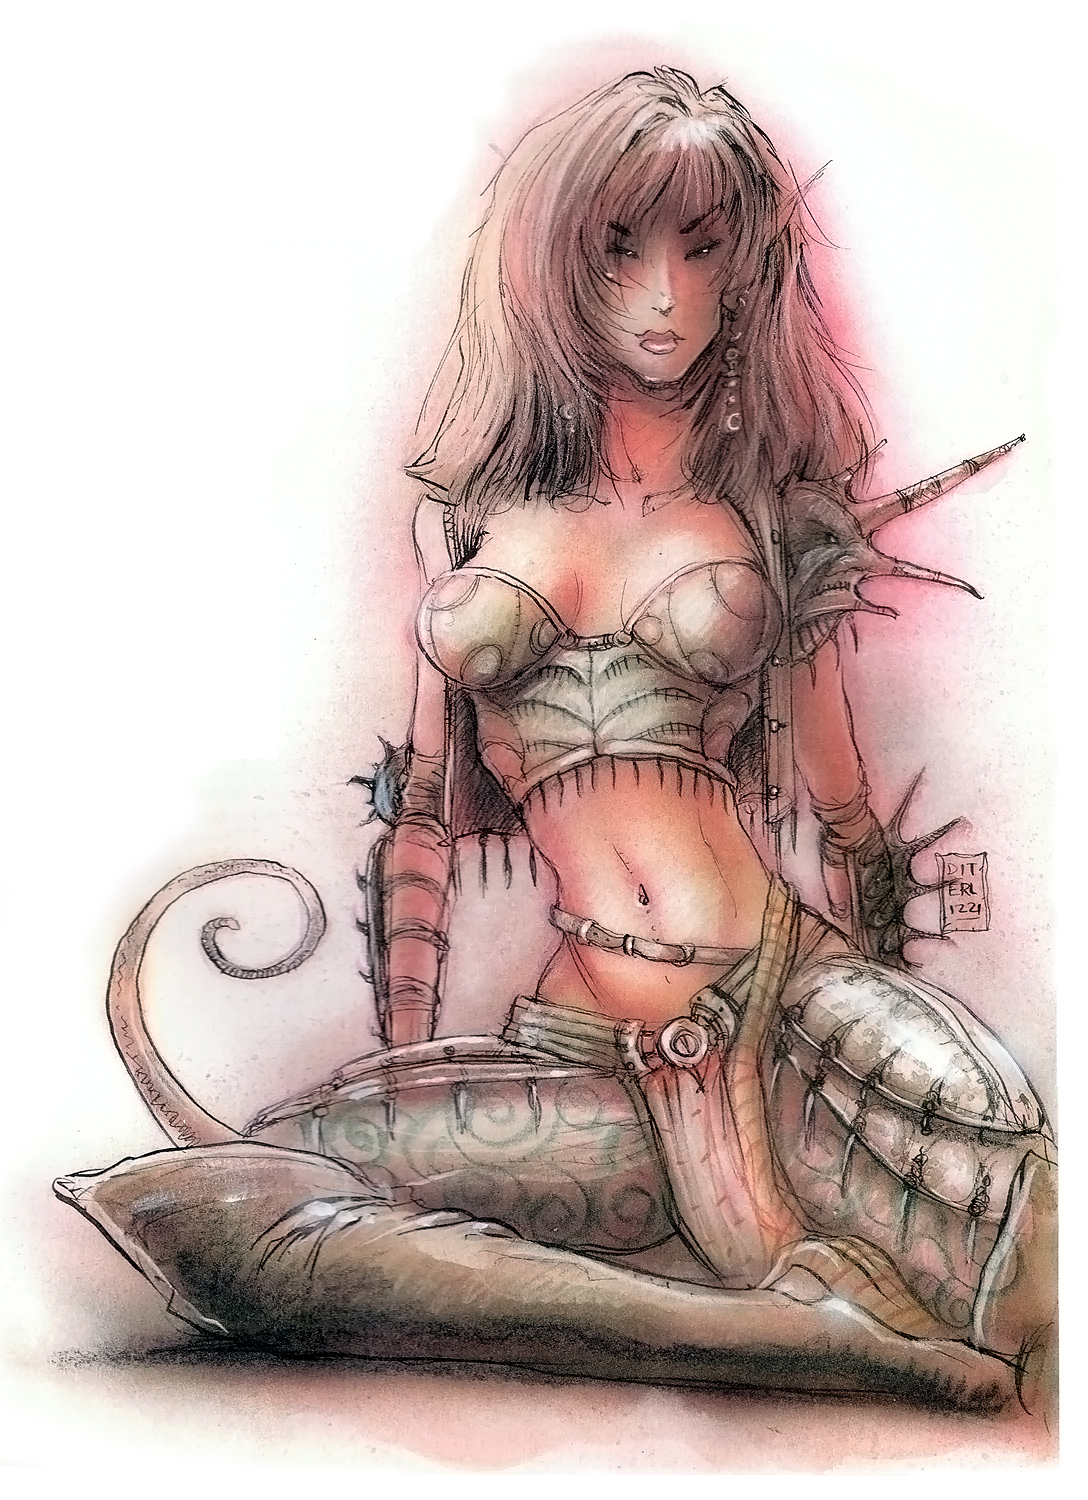 tiefling planescape Tiefling - by Tony Diterlizzi TSR - Planescape Monstrous Compendium Appendix I (1994) © Wizards of the Coast & Hasbro